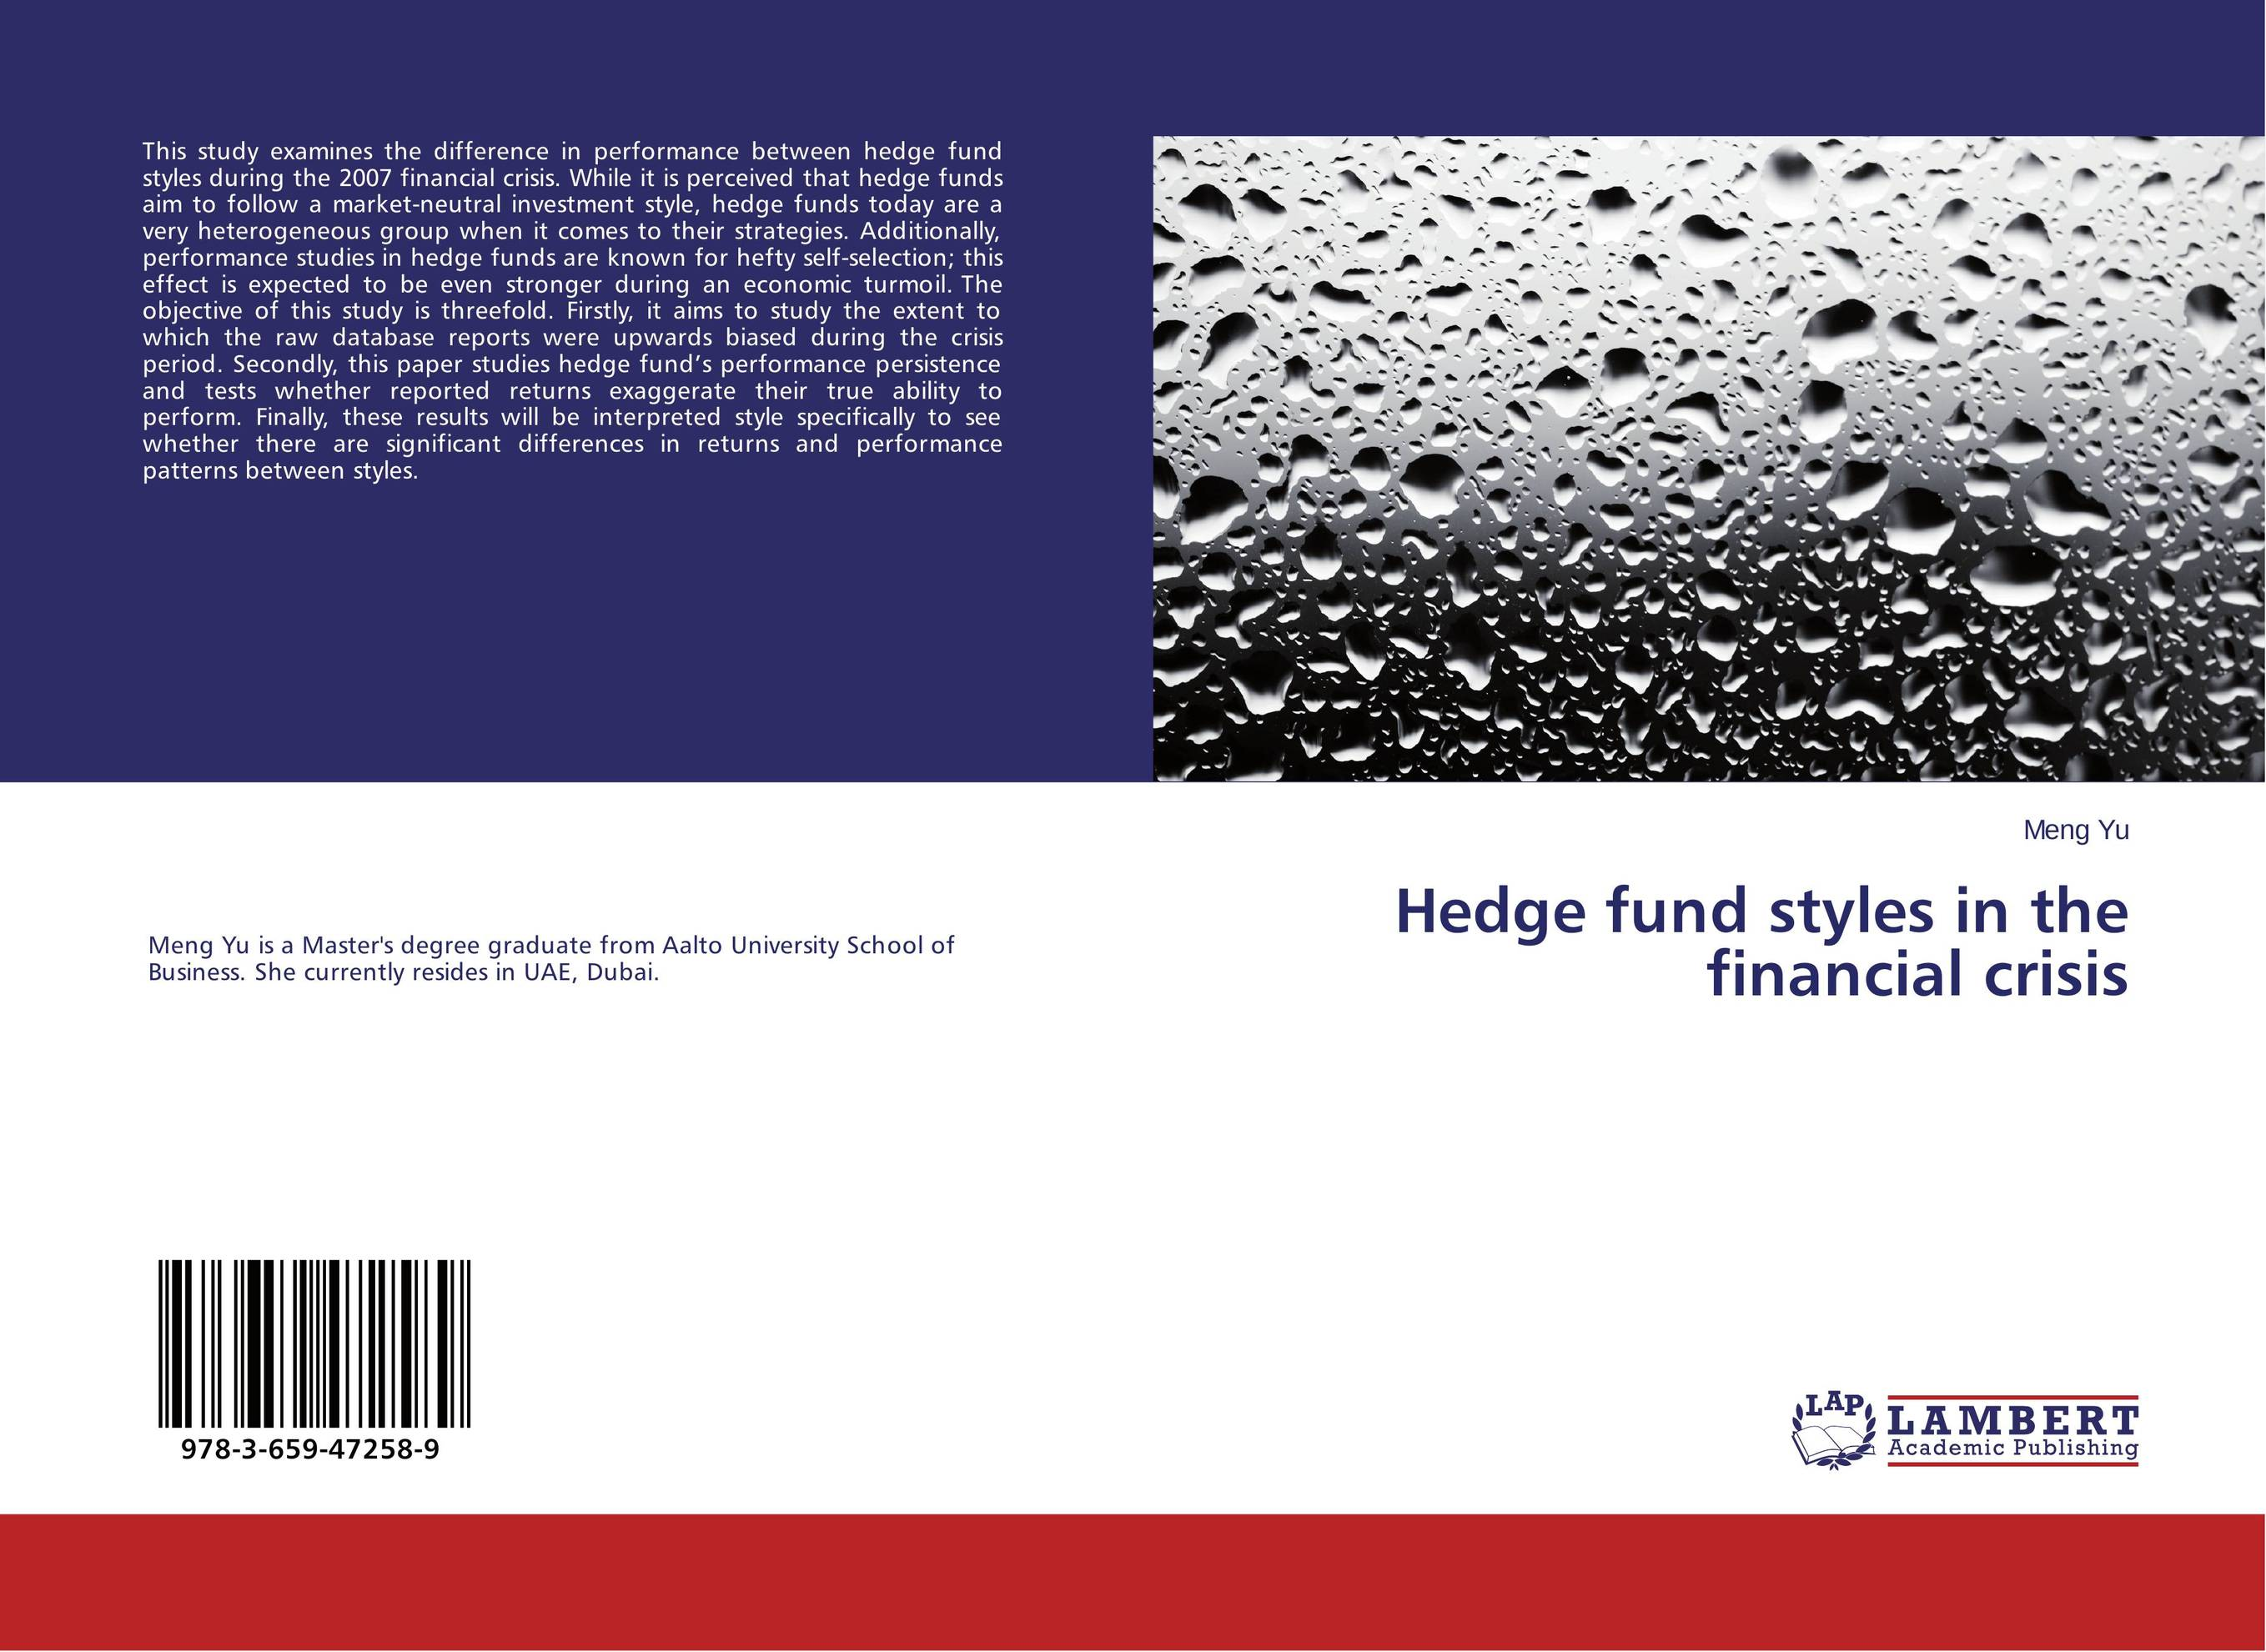 Hedge fund styles in the financial crisis sean casterline d investor s passport to hedge fund profits unique investment strategies for today s global capital markets